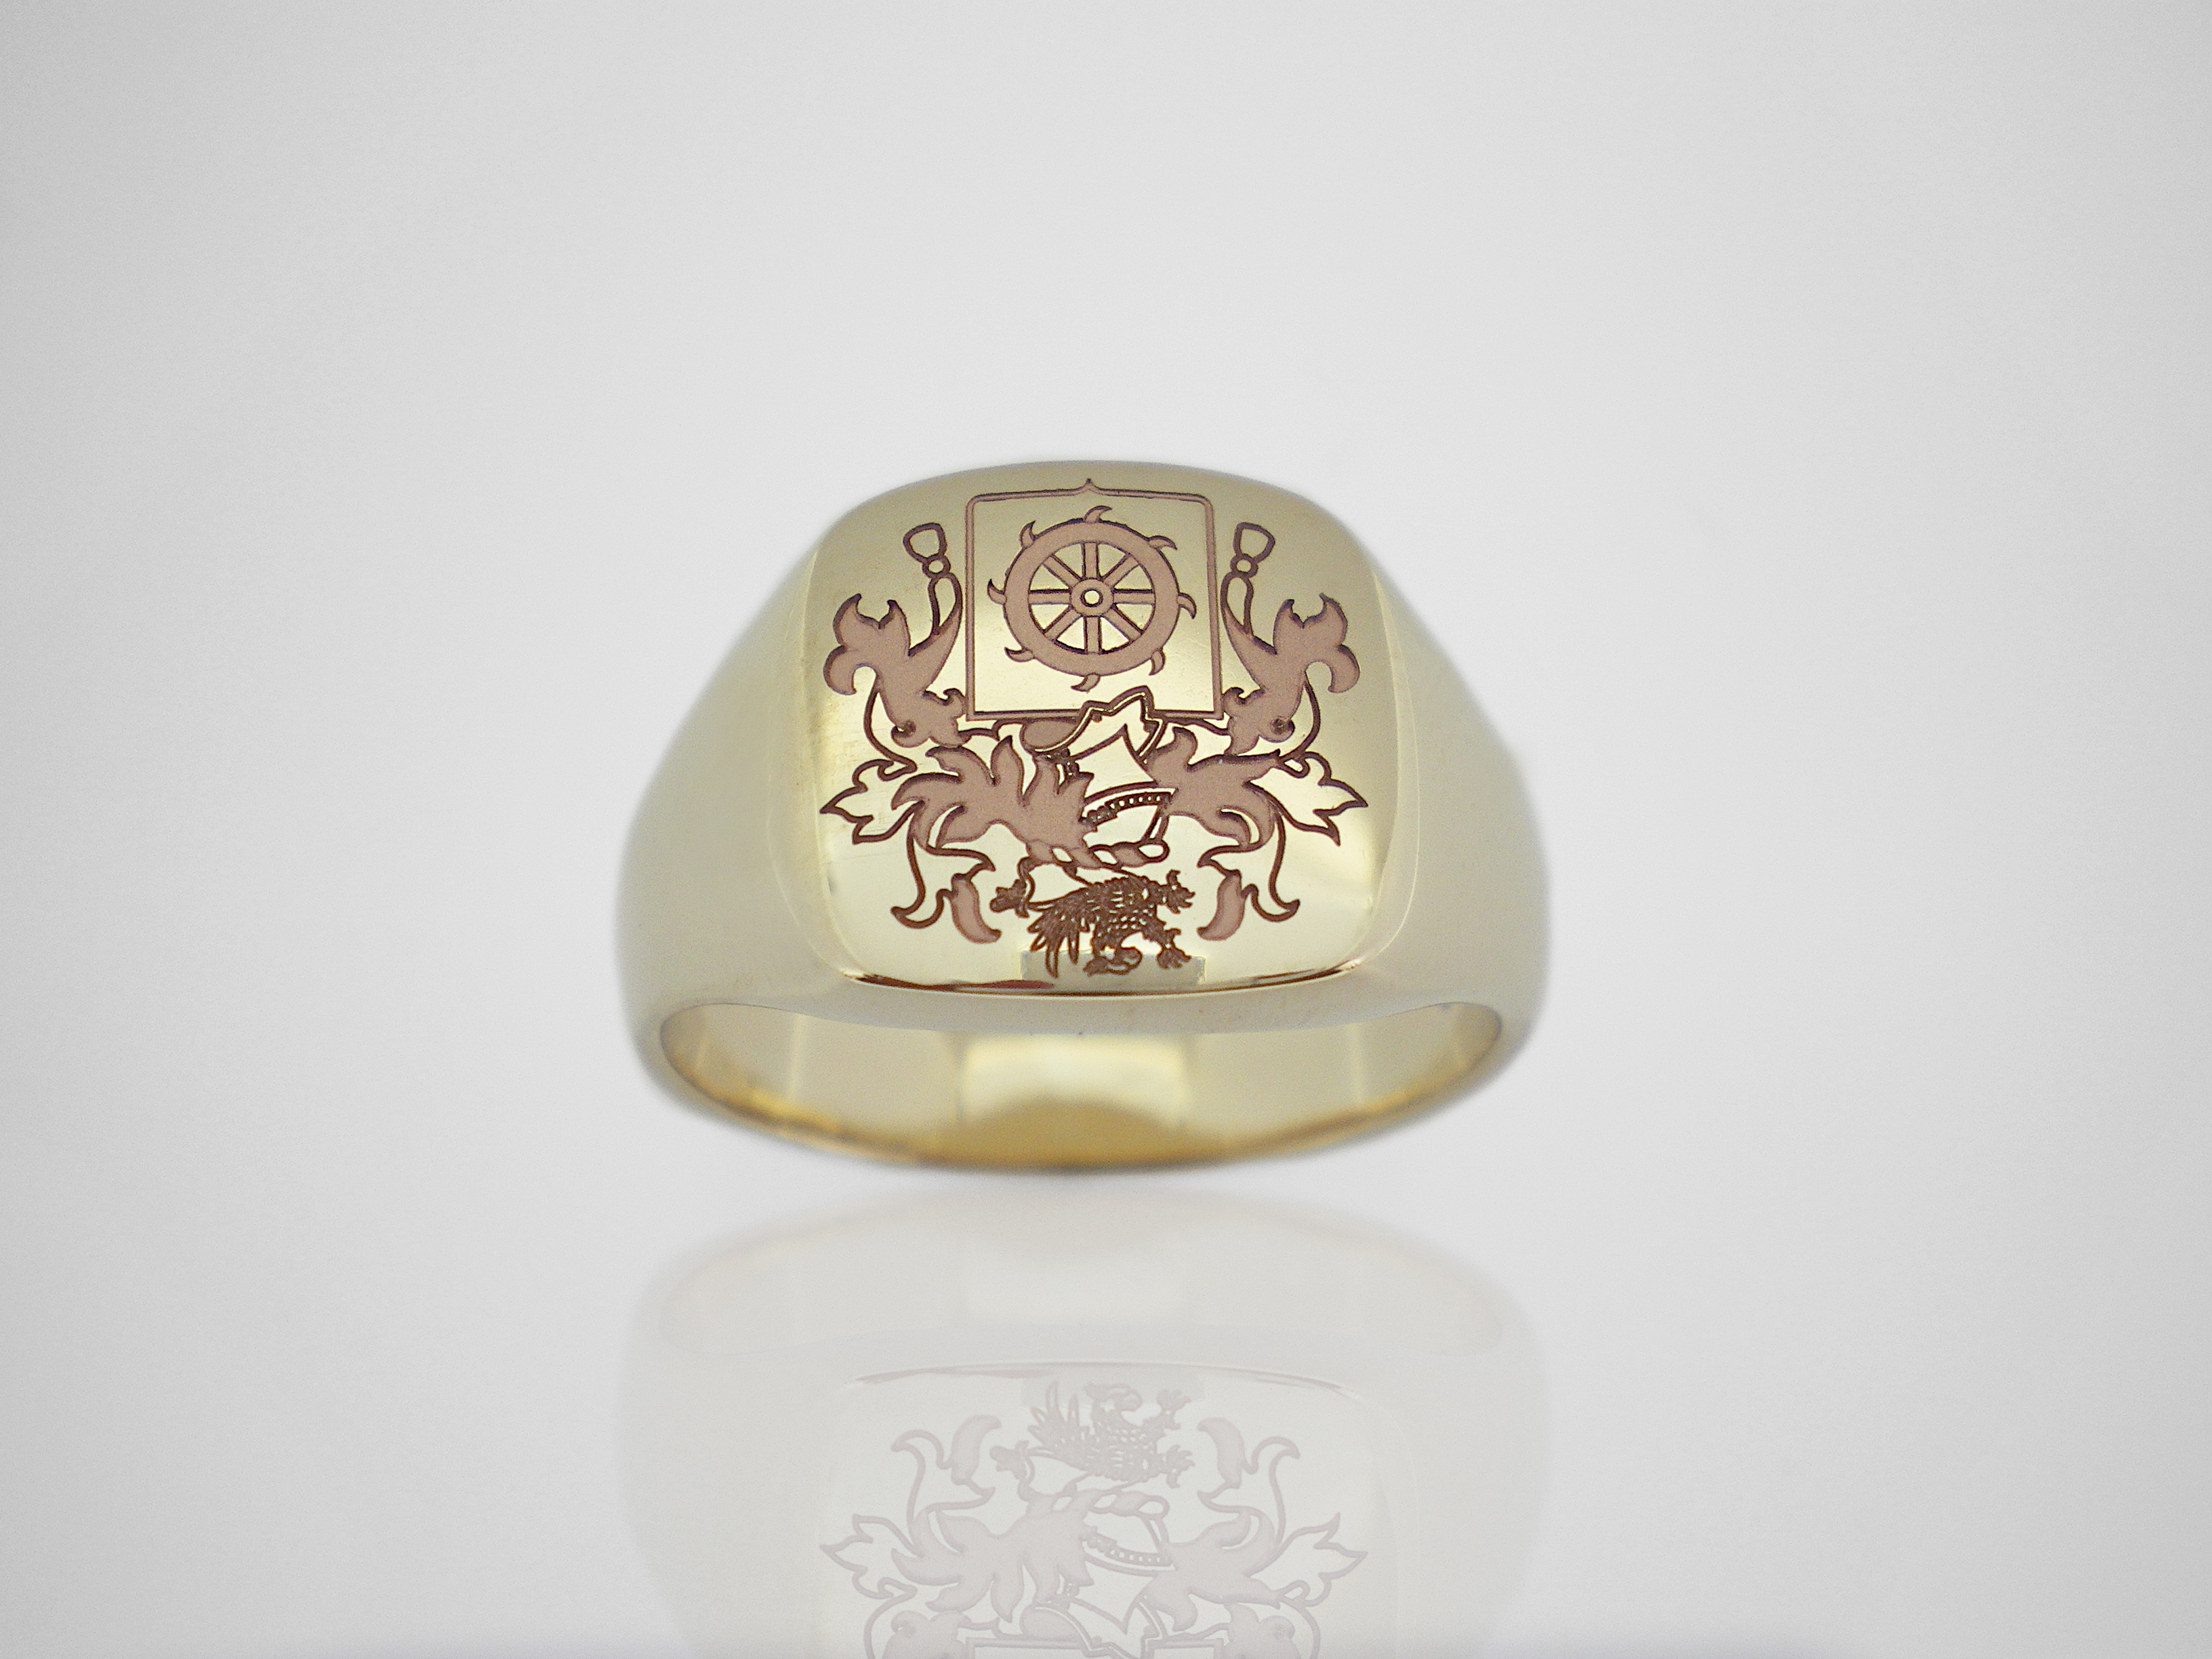 pin rings crest mcdermott family pinterest ring